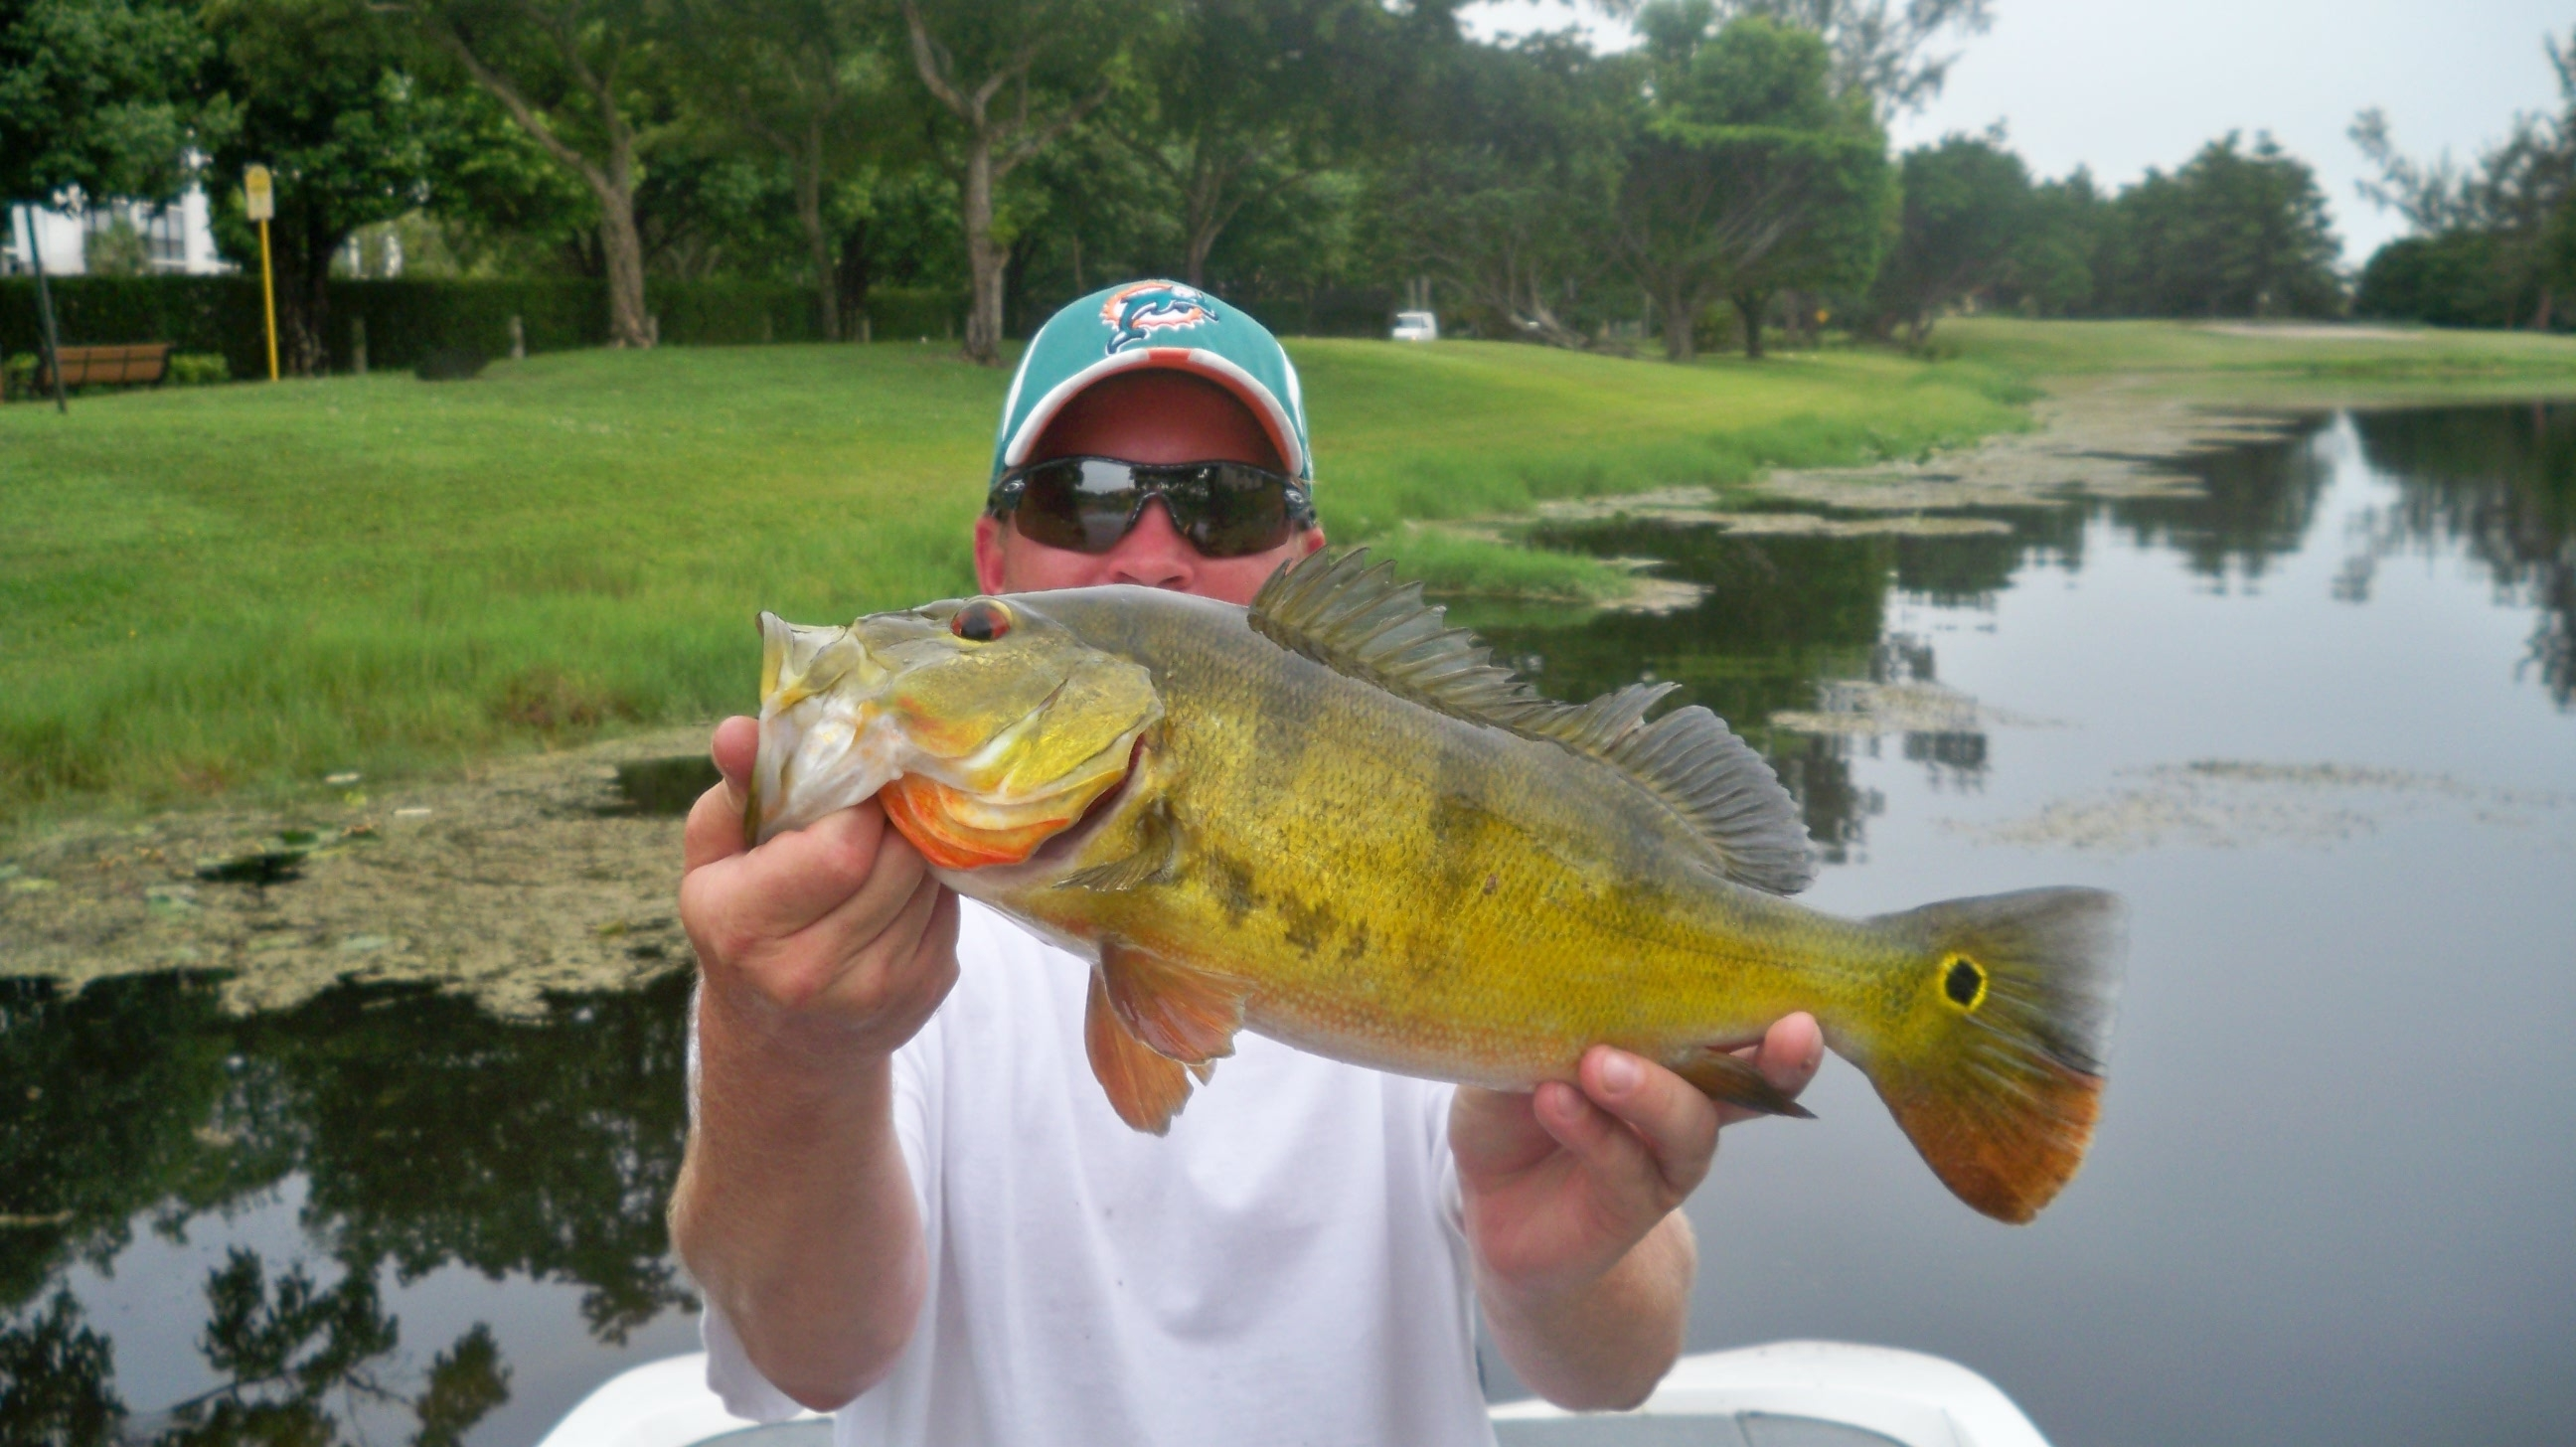 Freshwater fish of florida - Freshwater Fishing Report South Florida 7 10 2009